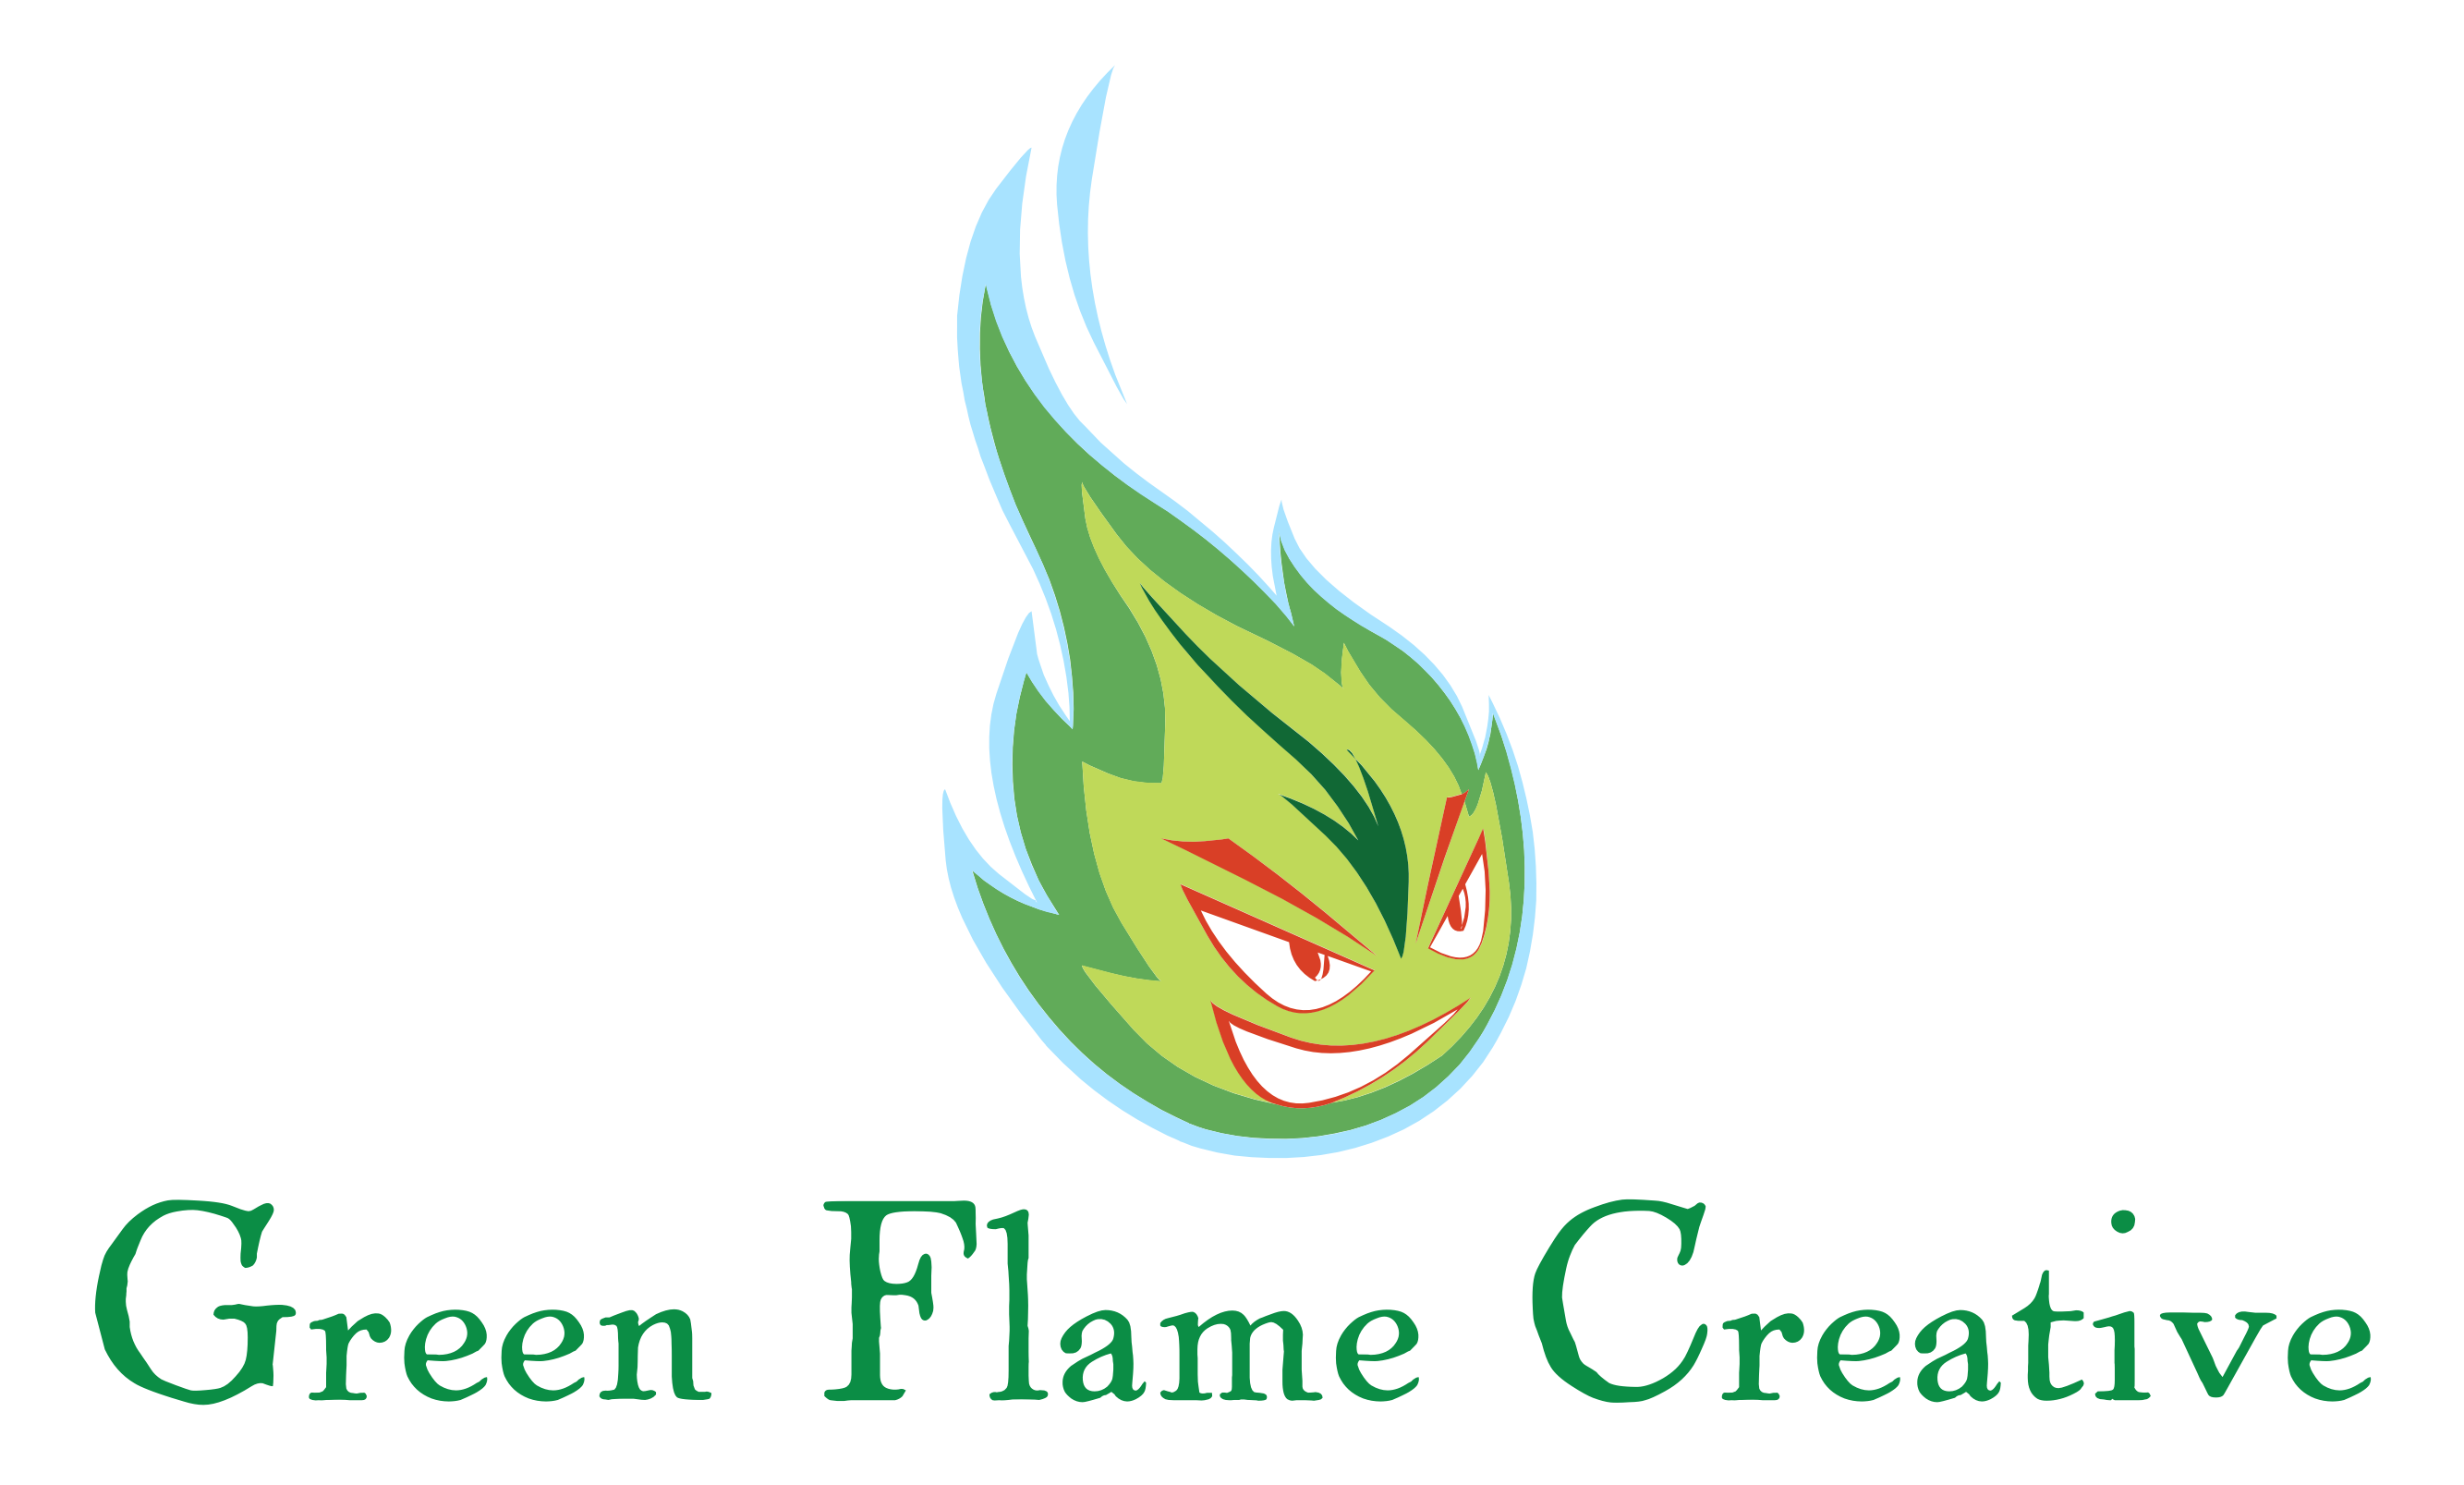 Green Flame Creative